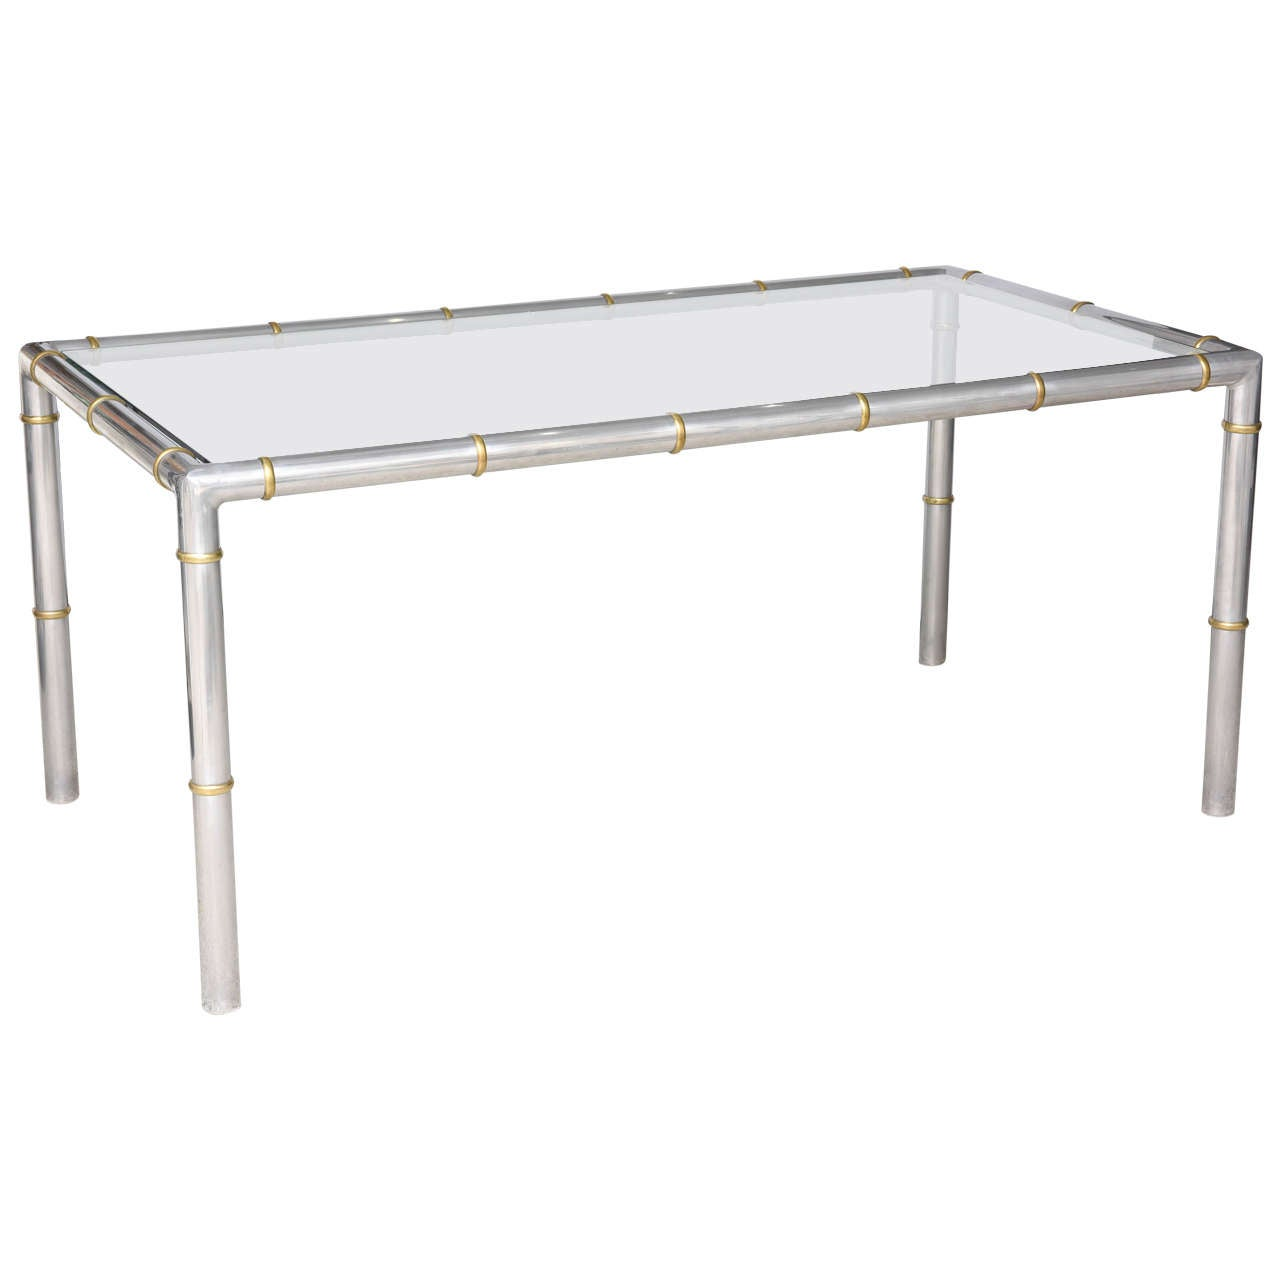 Black bamboo dining table - Hollywood Regency Style Faux Bamboo Rectangular Dining Table Aluminum And Brass 1